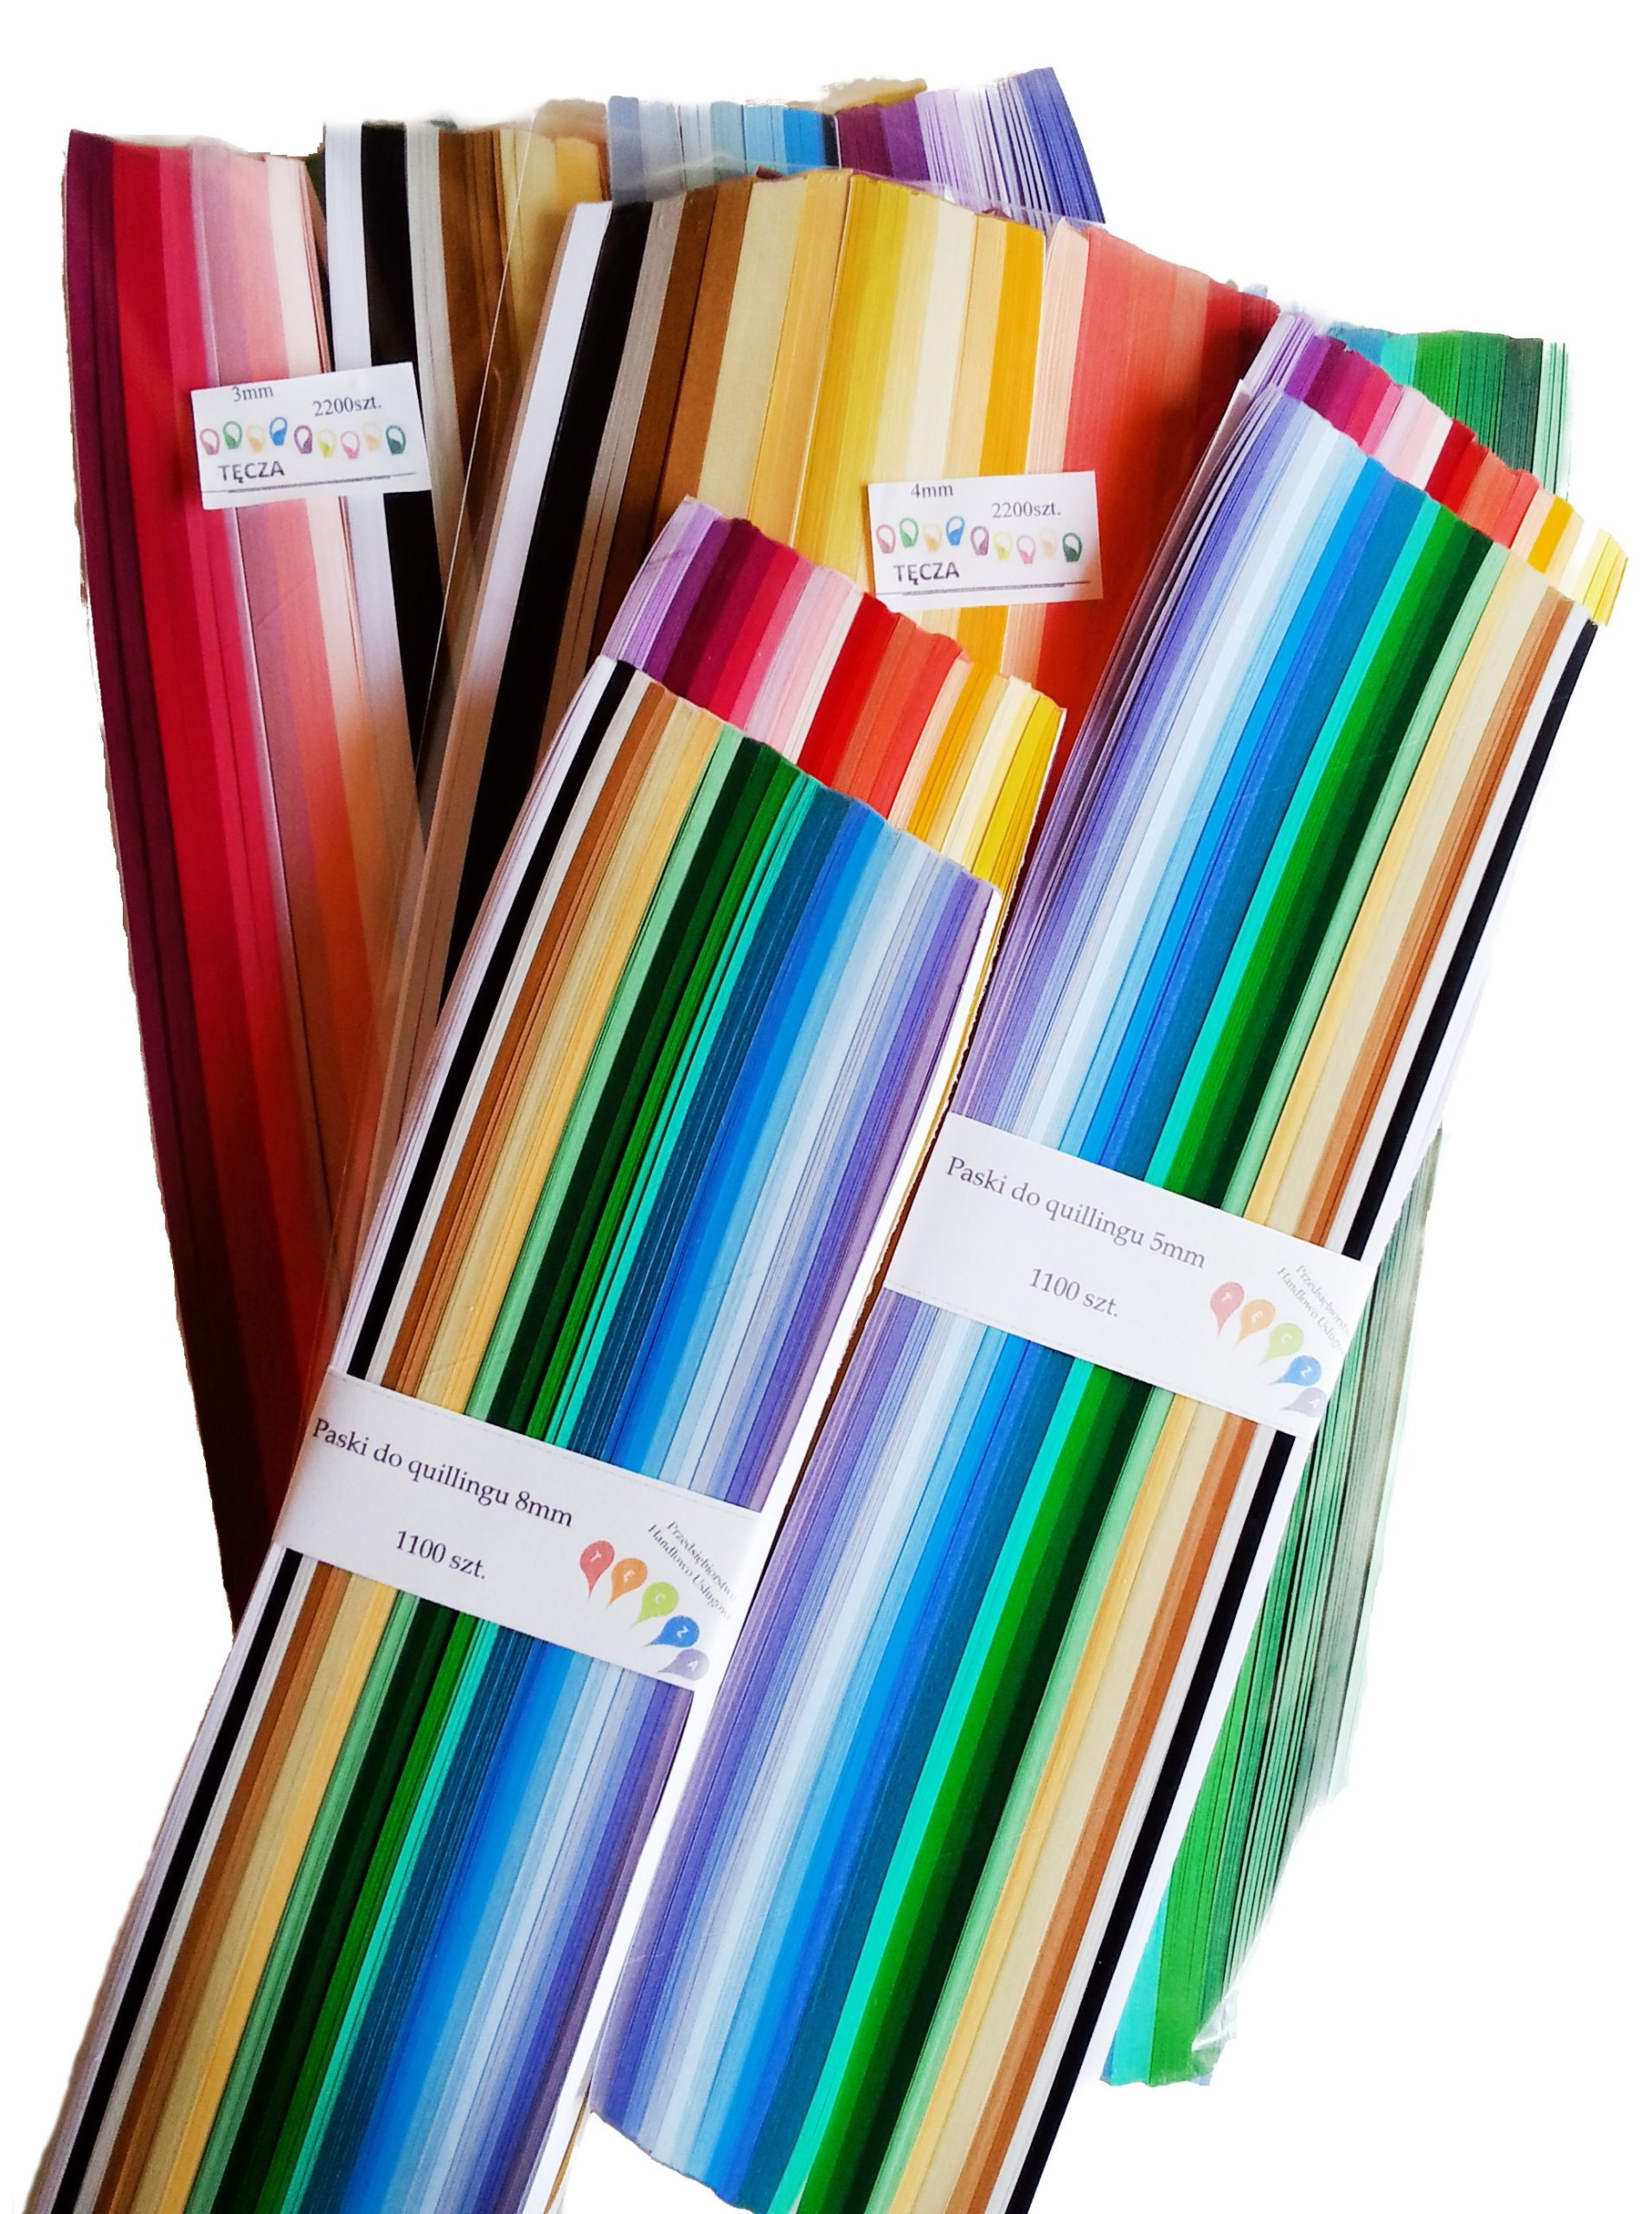 Item Strips for quillingu 3,4,5,8 mm 6600szt. QUILLING